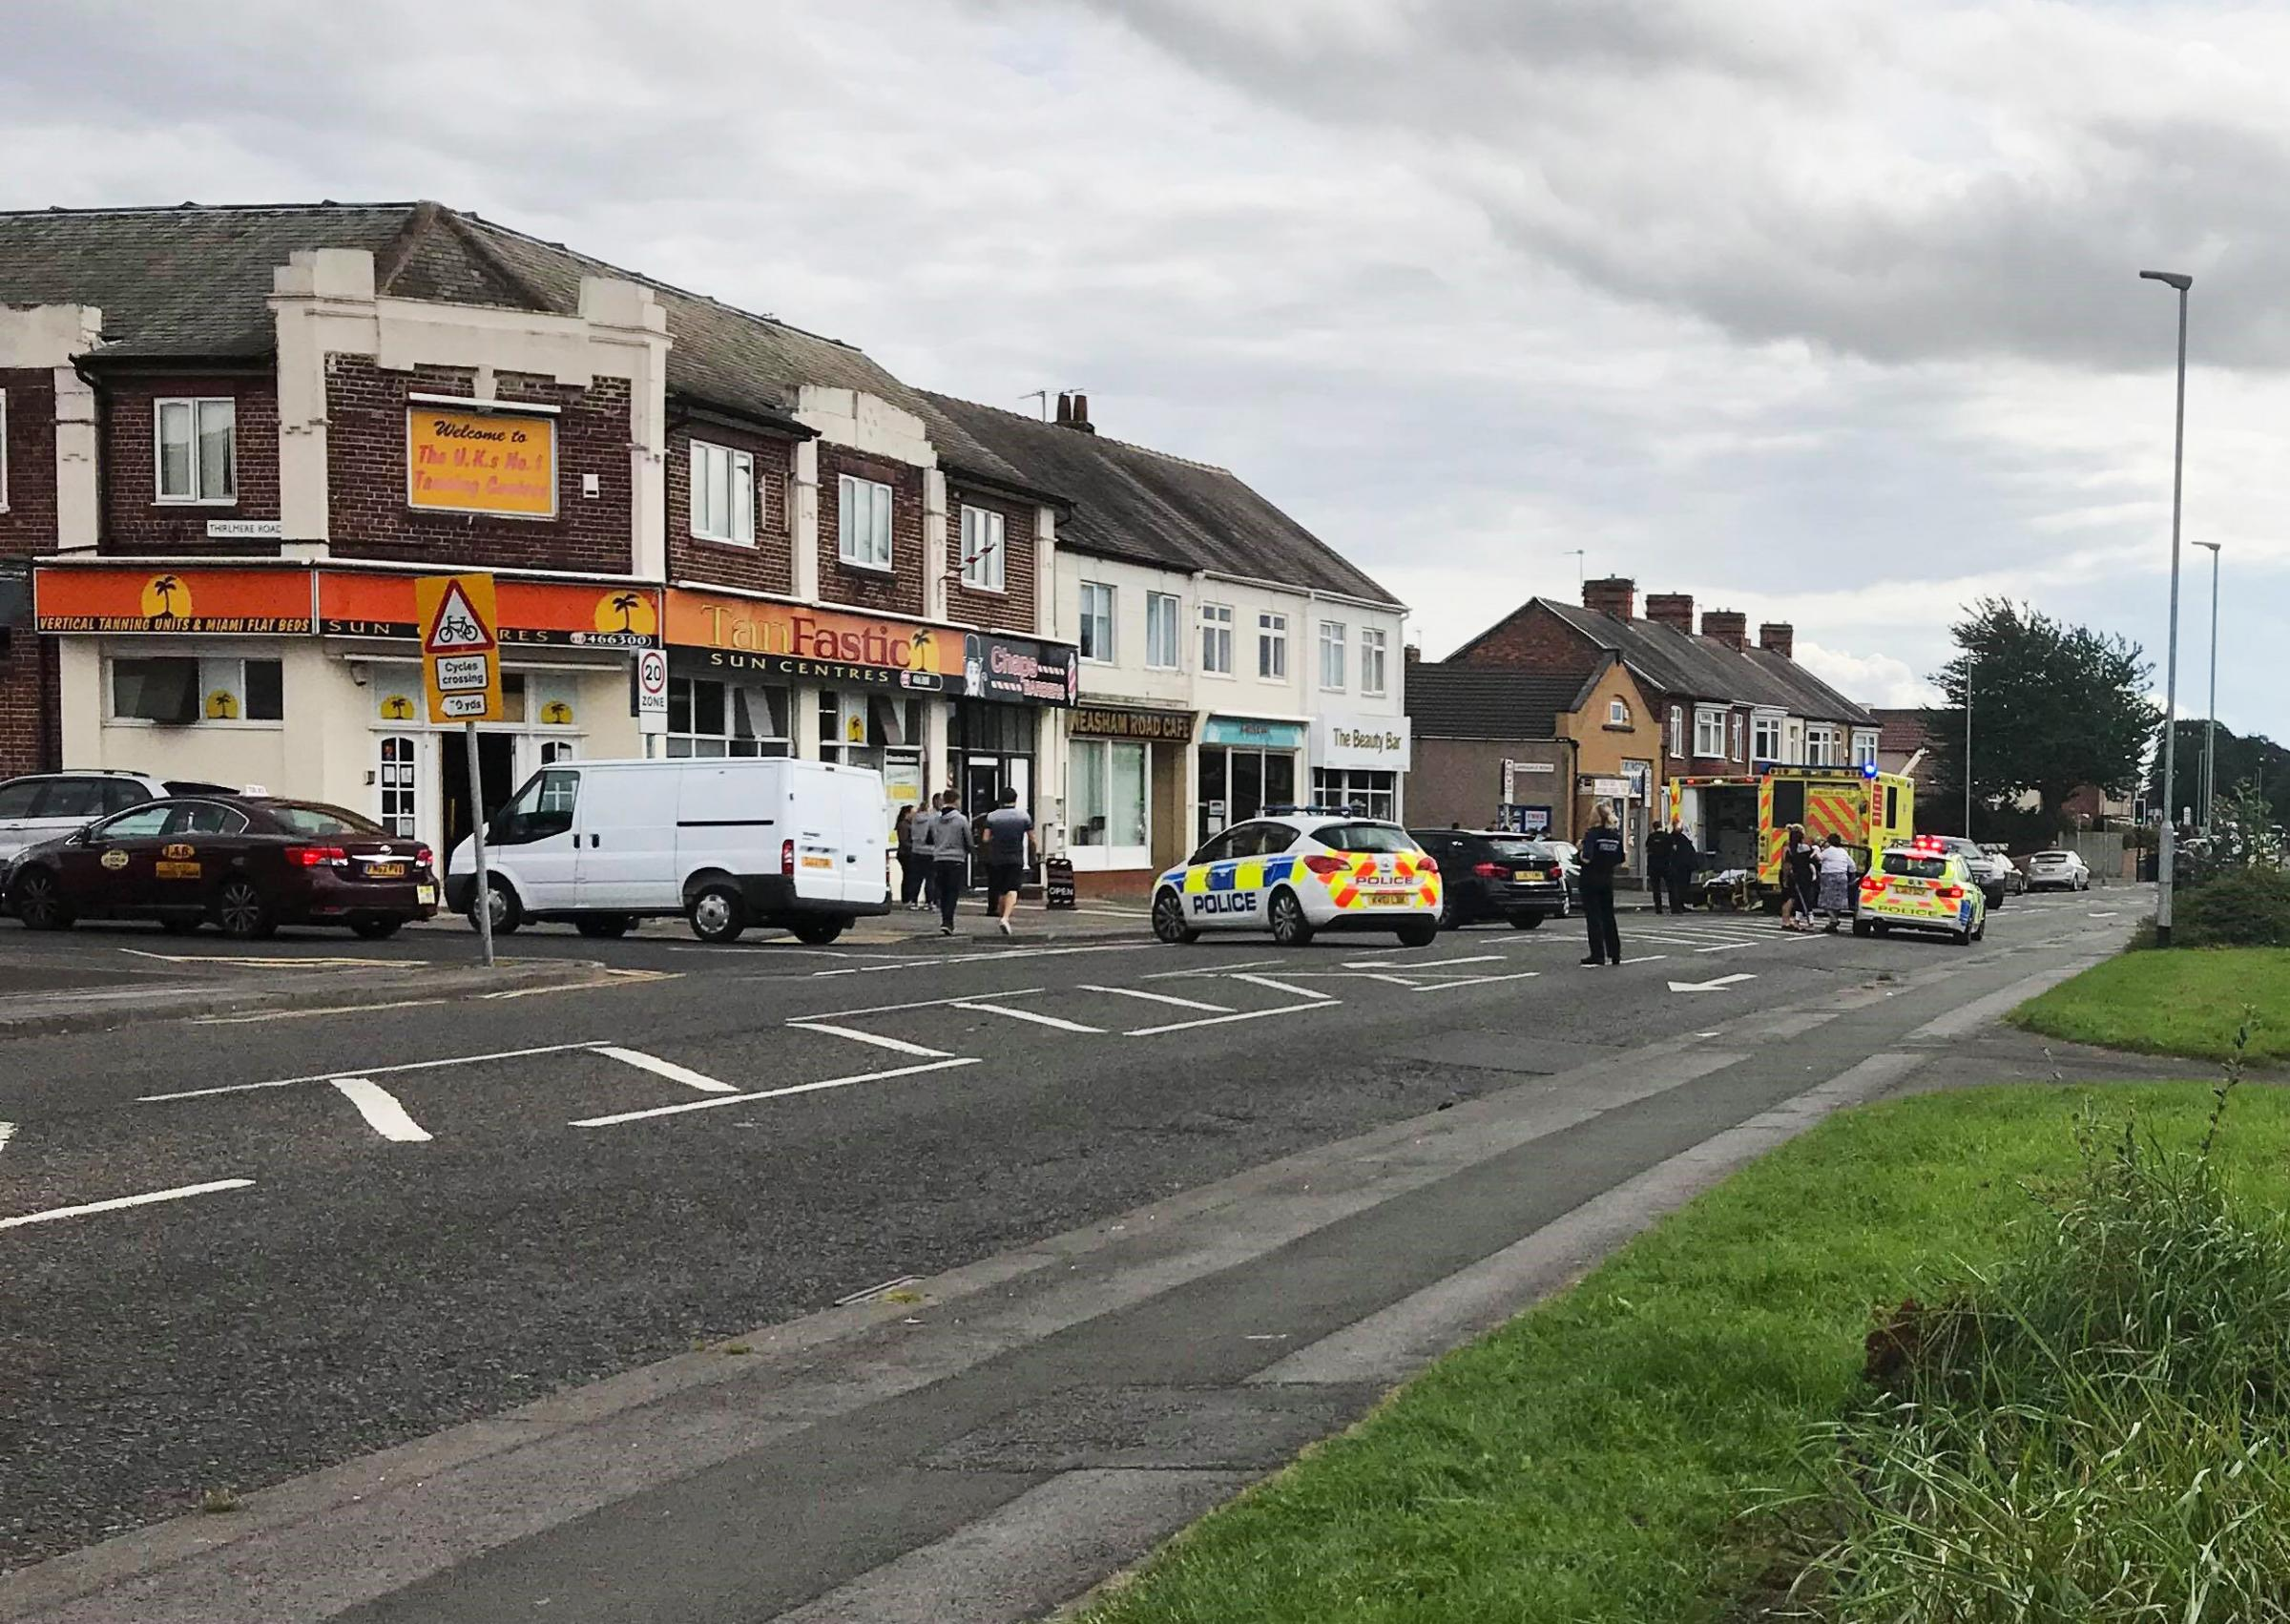 Man in wheelchair struck by vehicle in Darlington - road closed